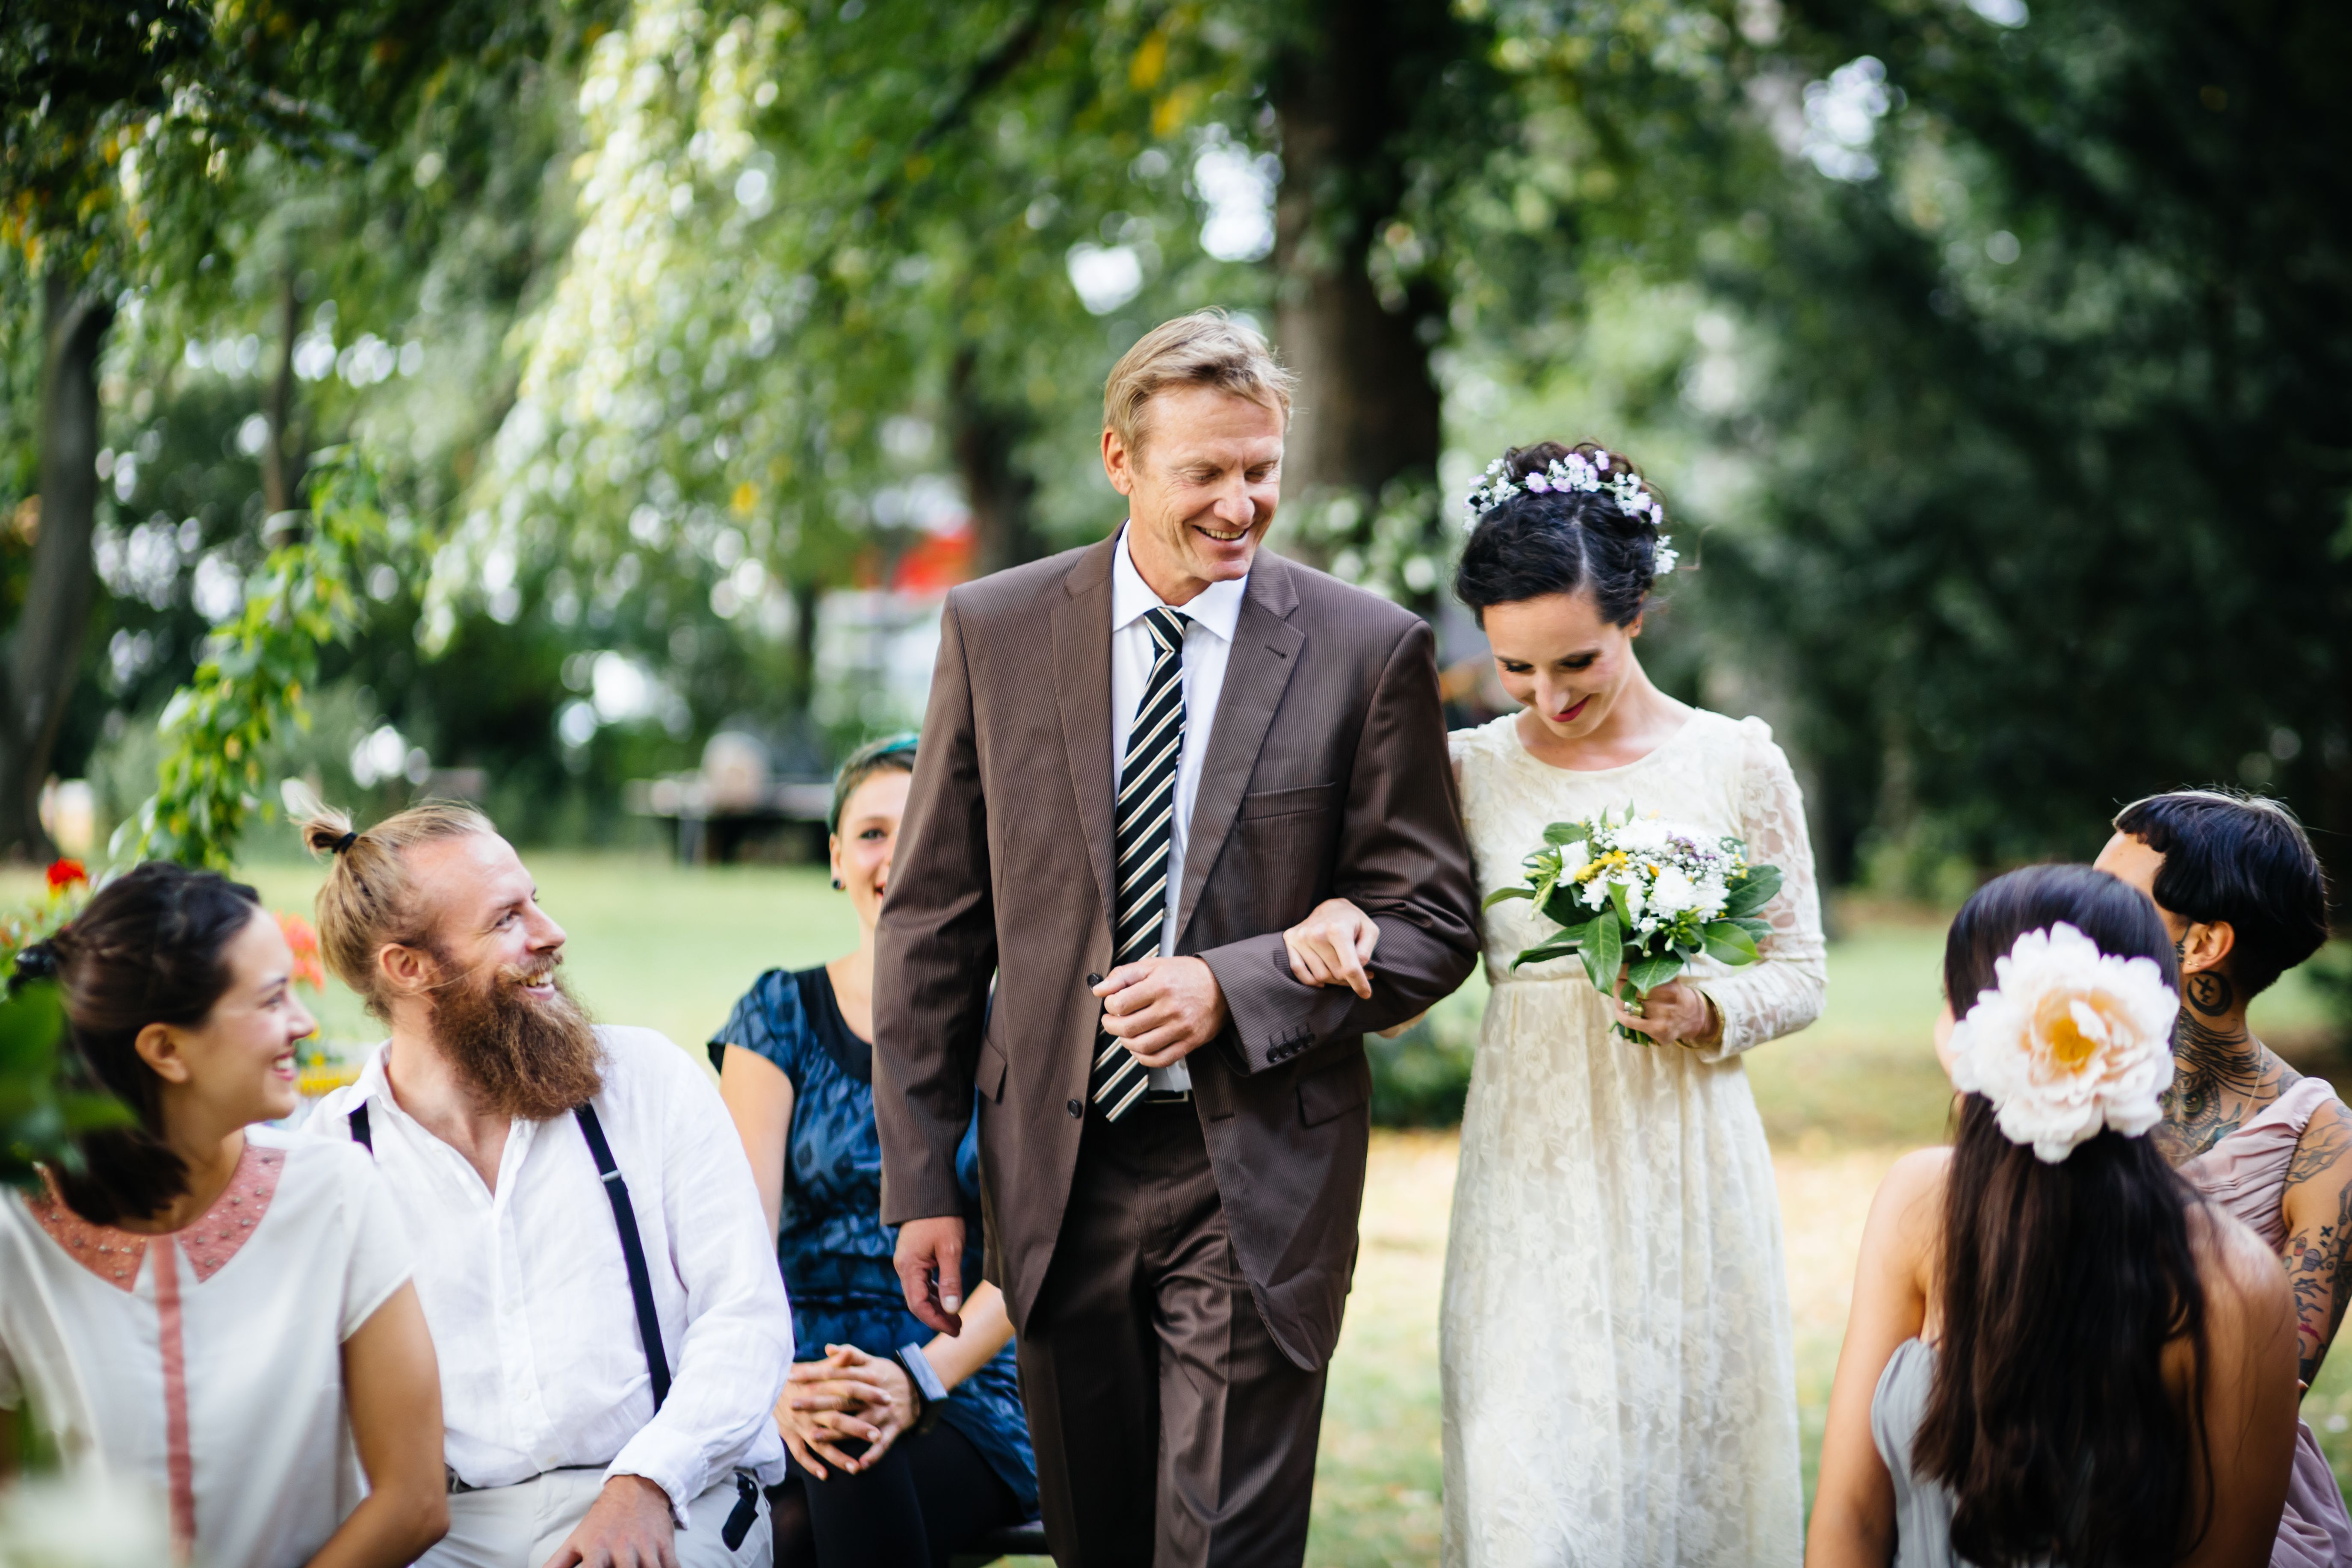 How Divorced Dads Can Best Handle a Daughter's Wedding